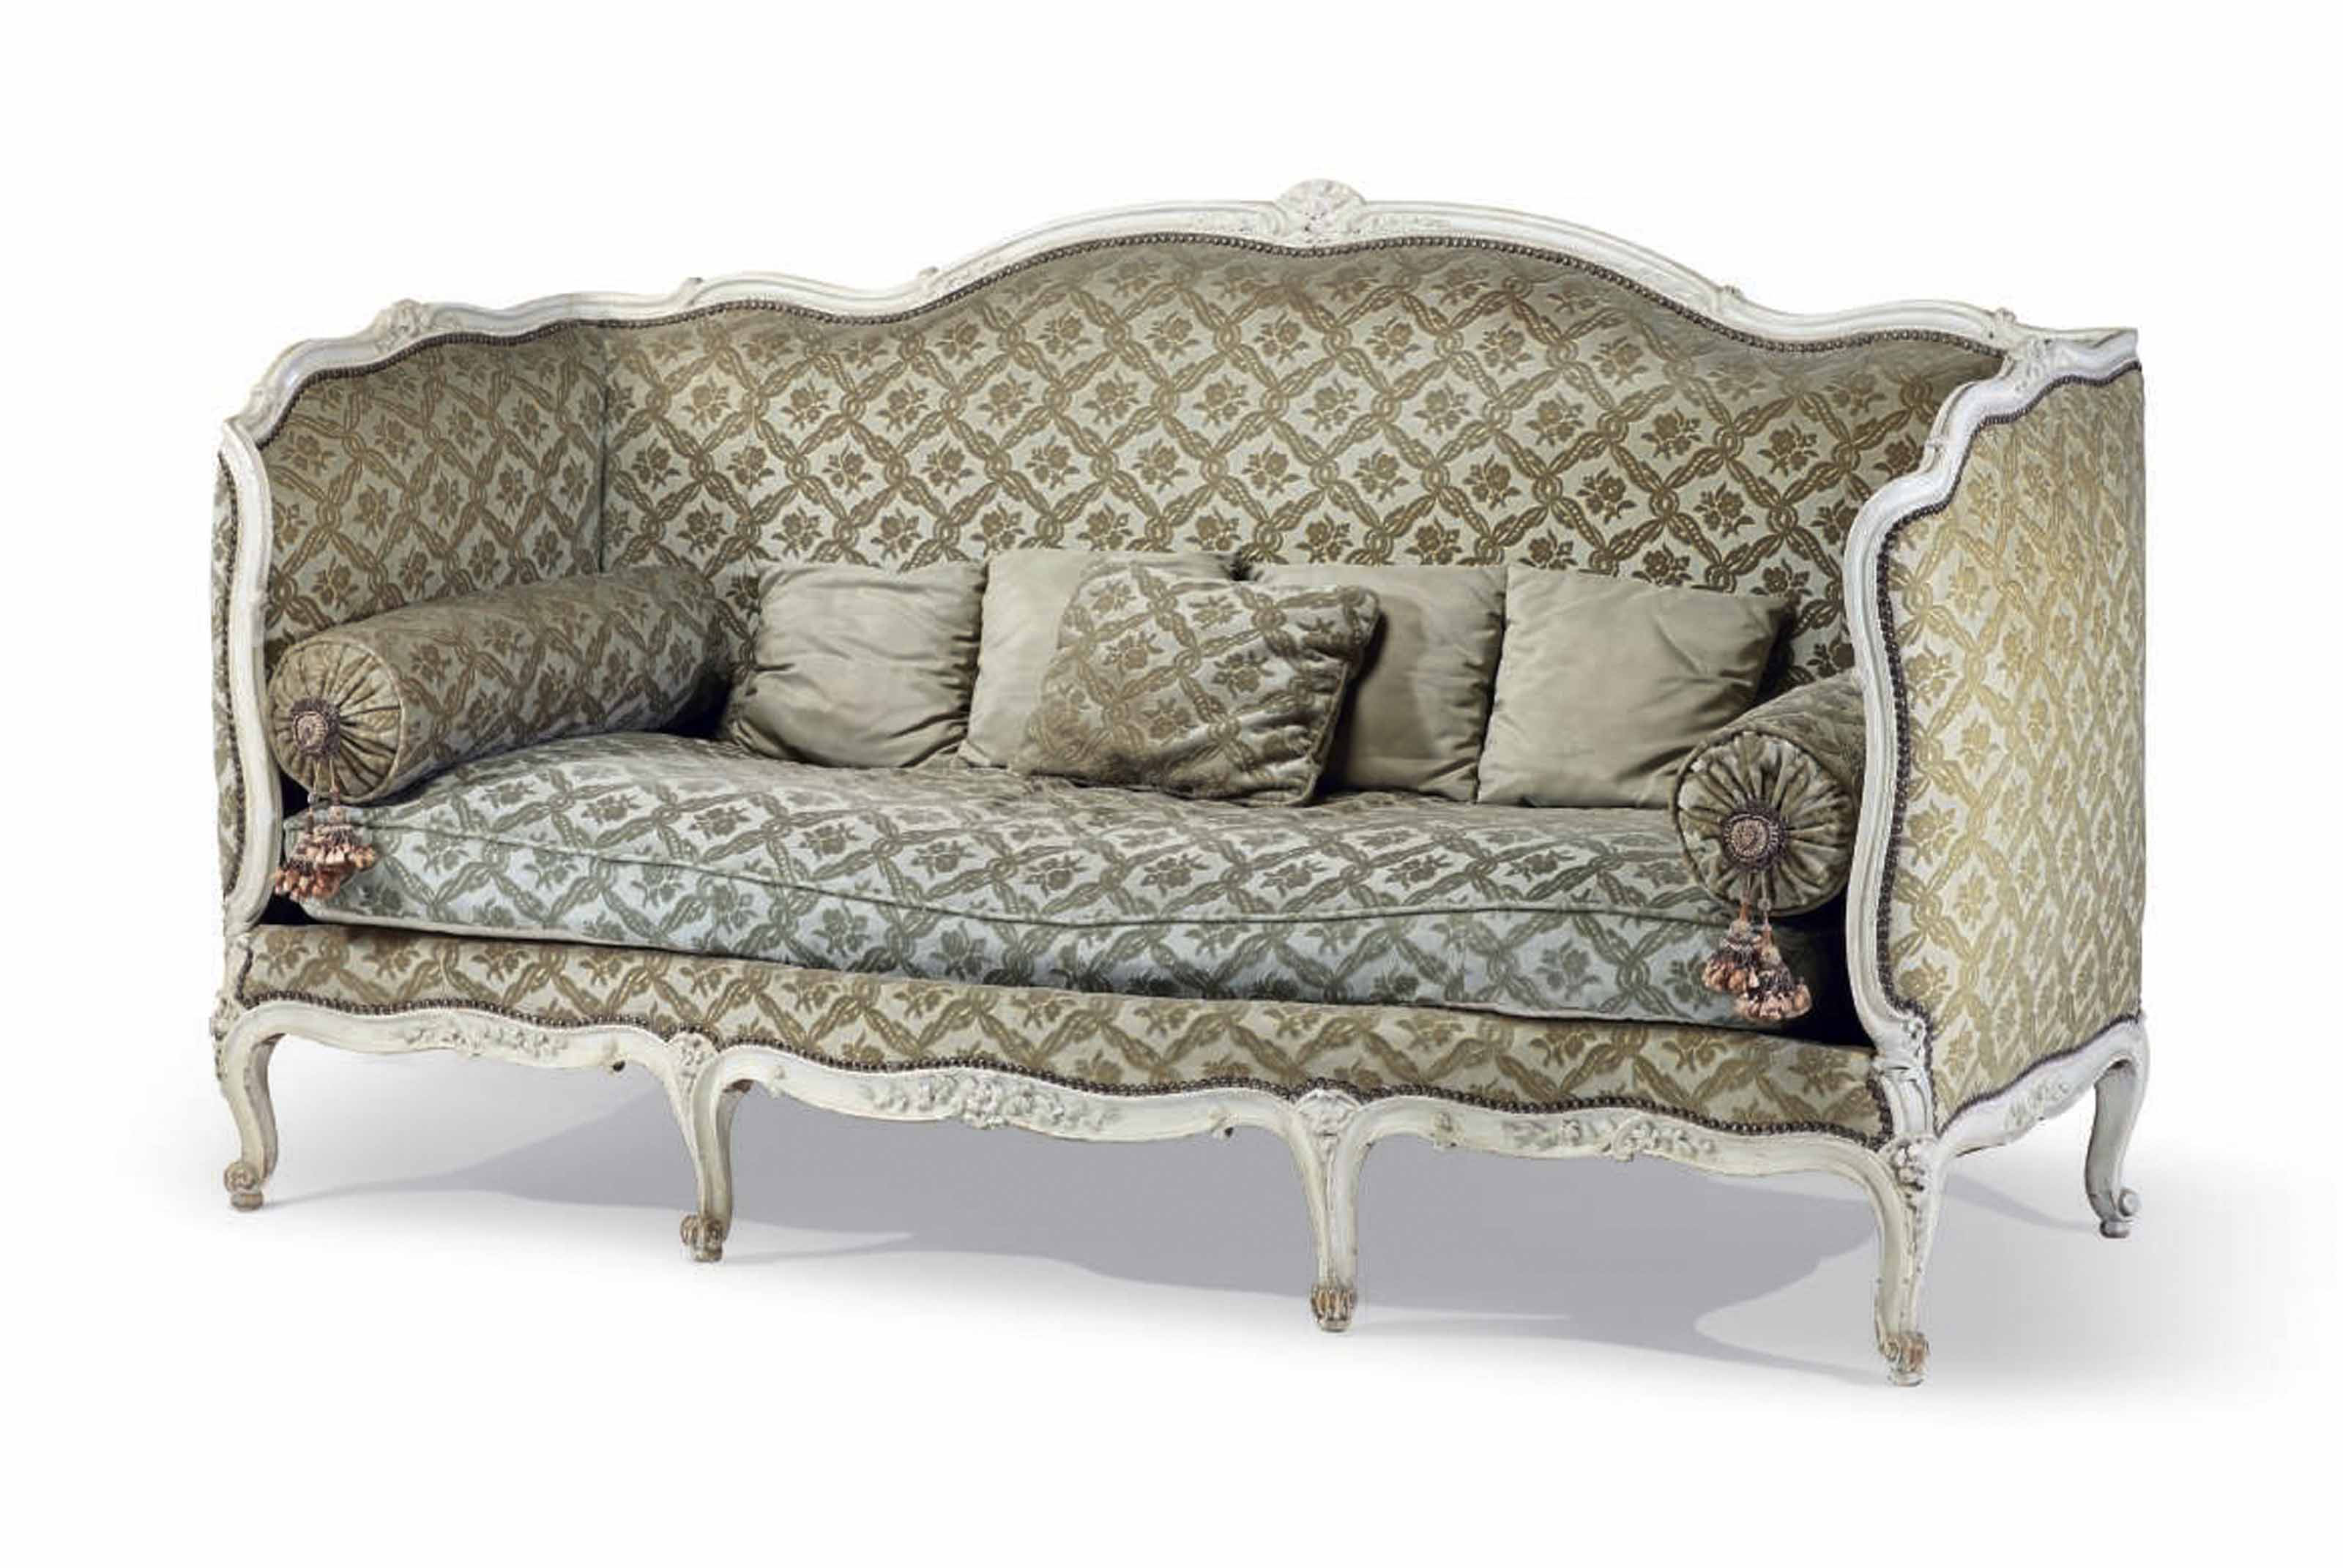 canape de style louis xv attribue a la maison jansen christie 39 s. Black Bedroom Furniture Sets. Home Design Ideas